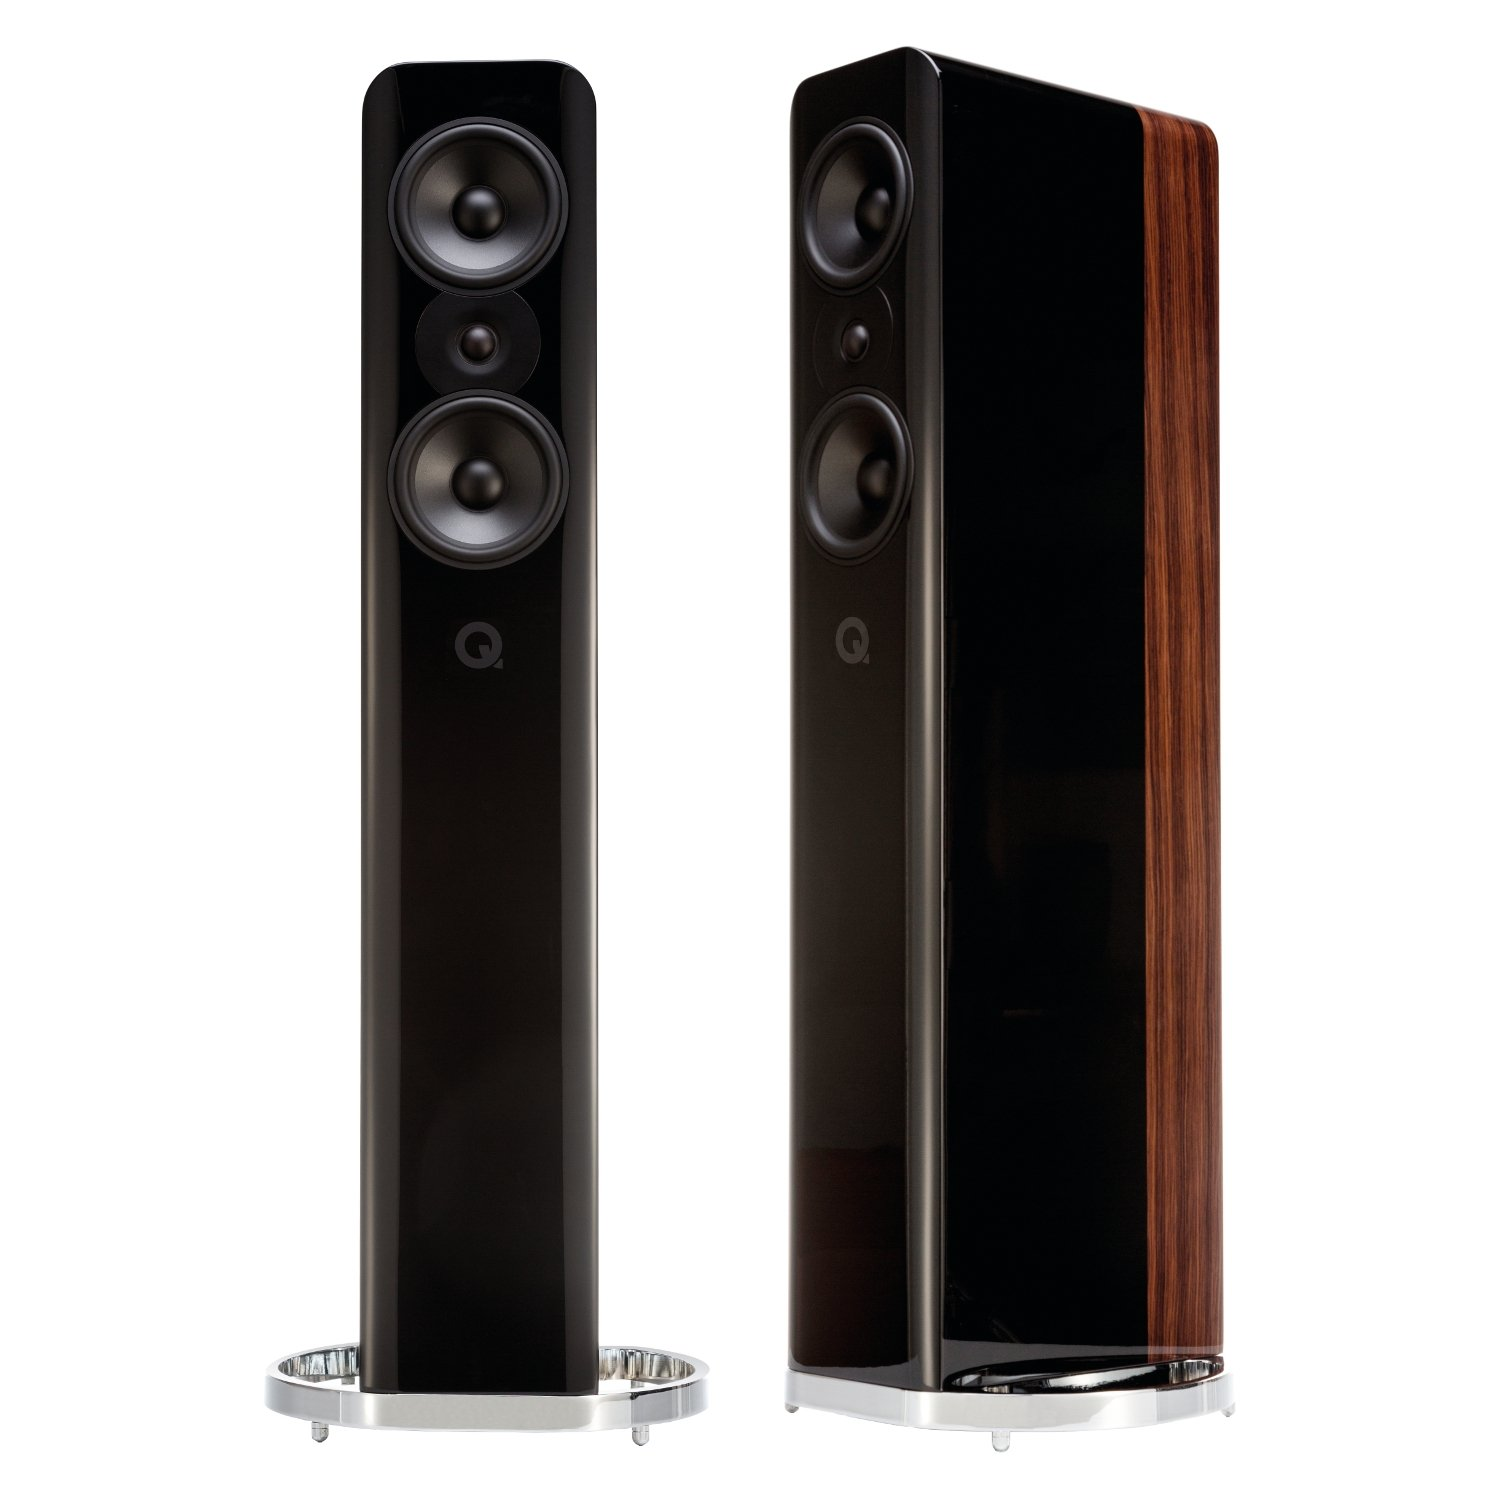 Q Acoustics Concept 500 black/walnut – USADAS